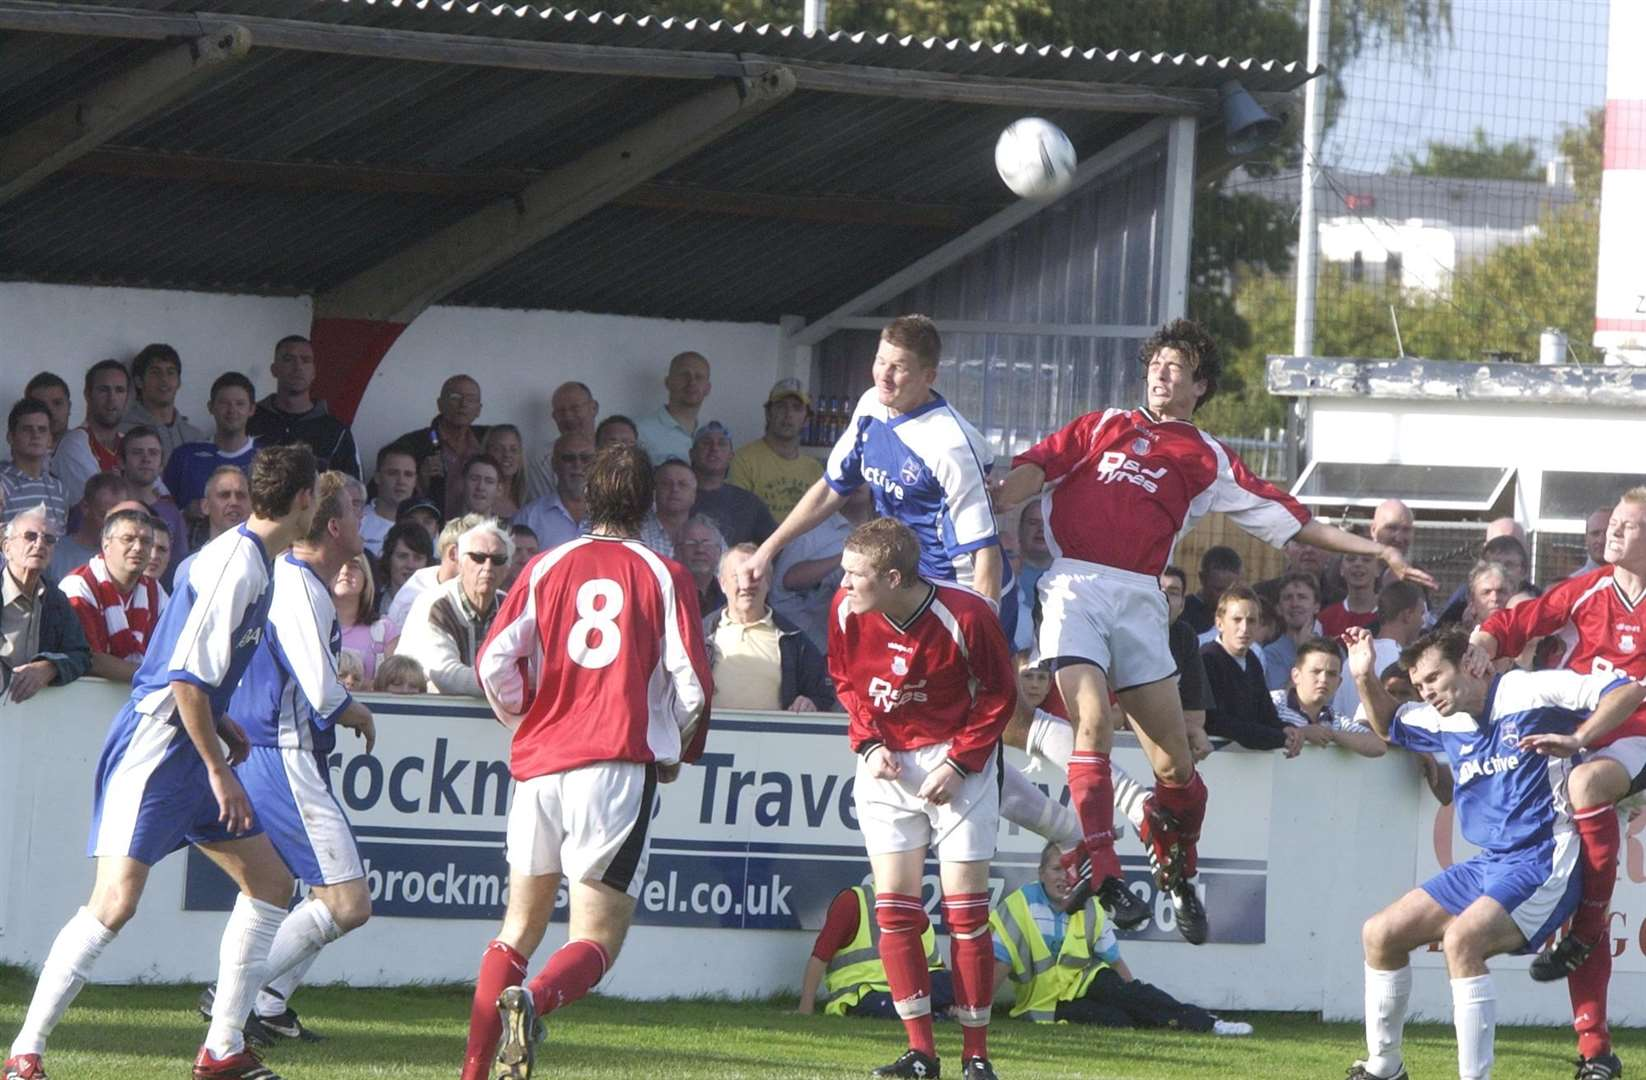 Big crowds flocked for a qualifying round clash between Whitstable Town and Margate in 2006